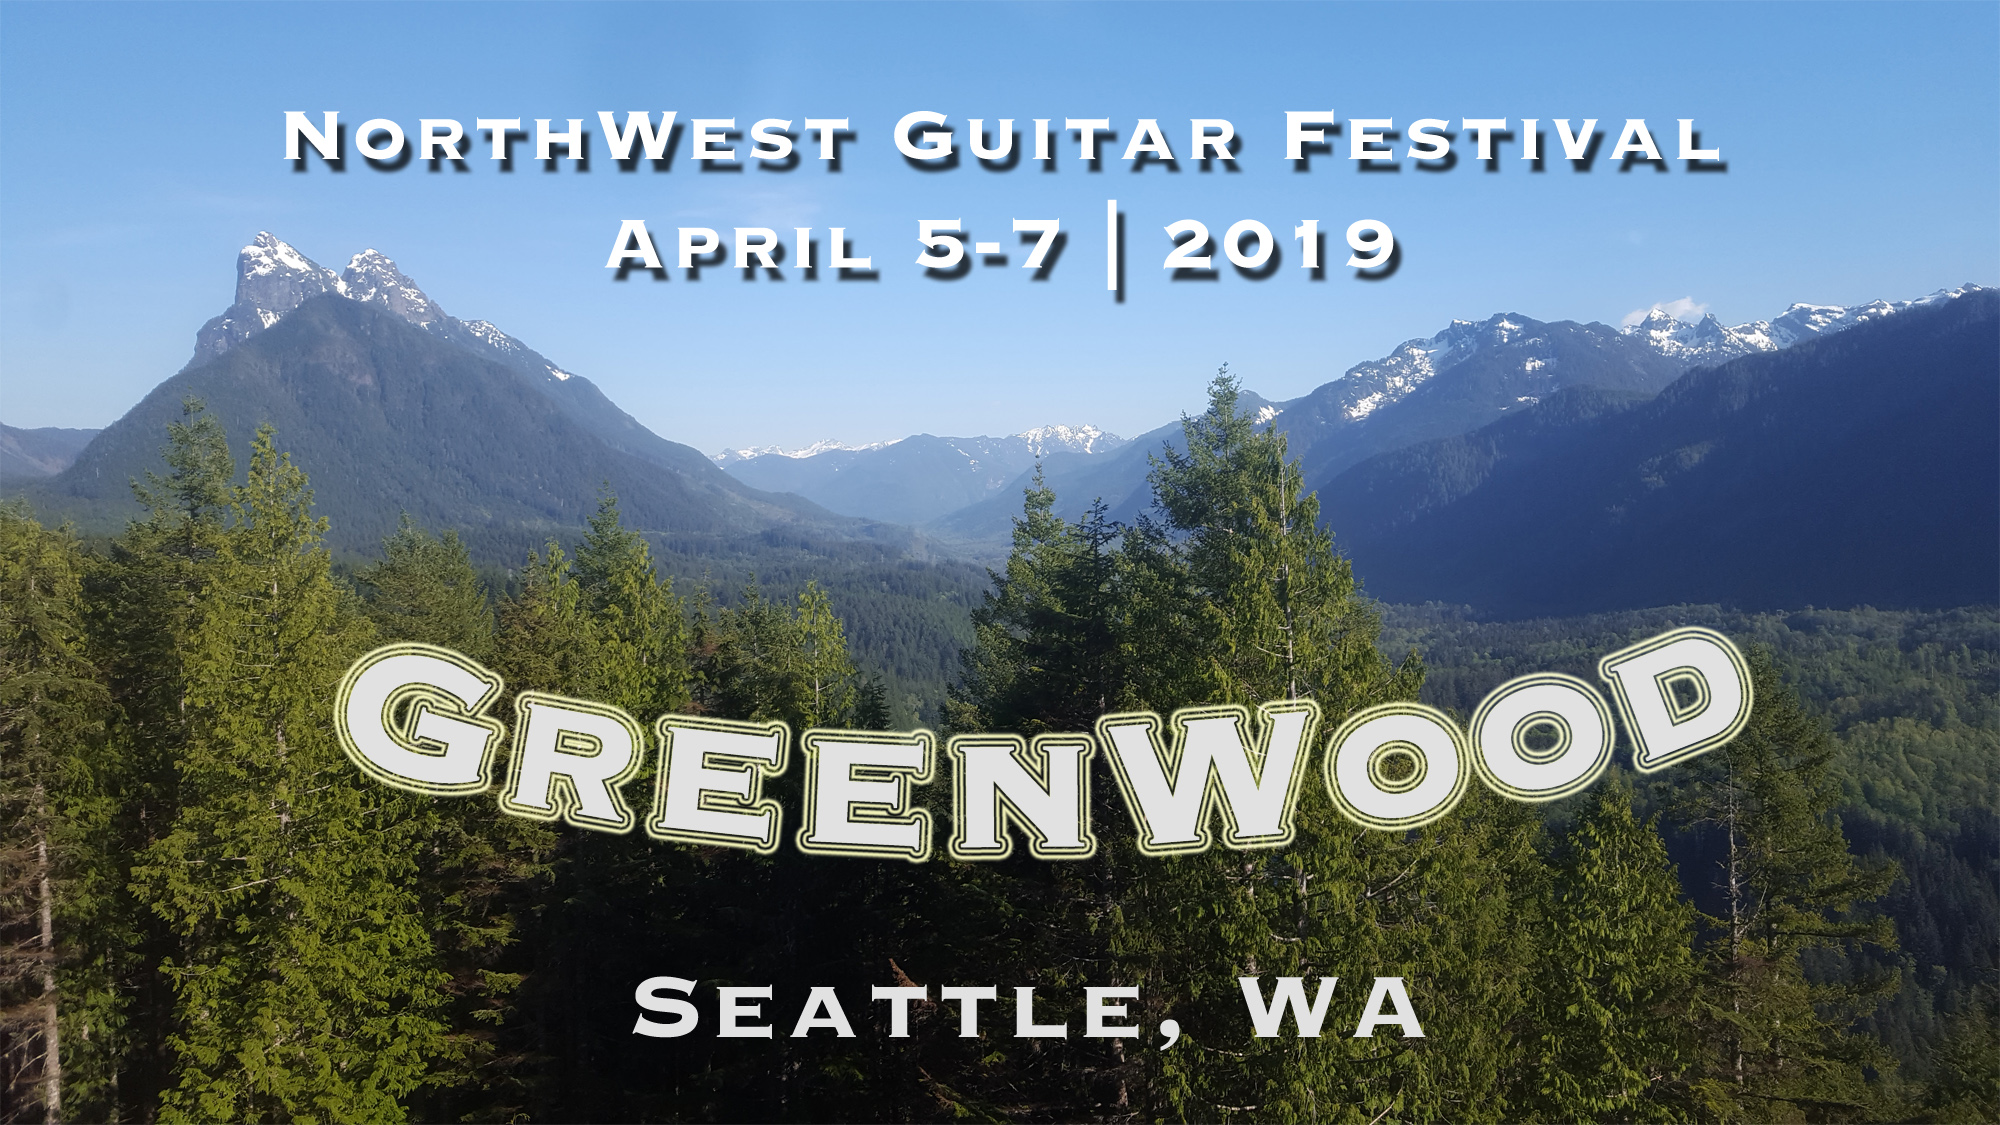 Northwest Guitar Festival